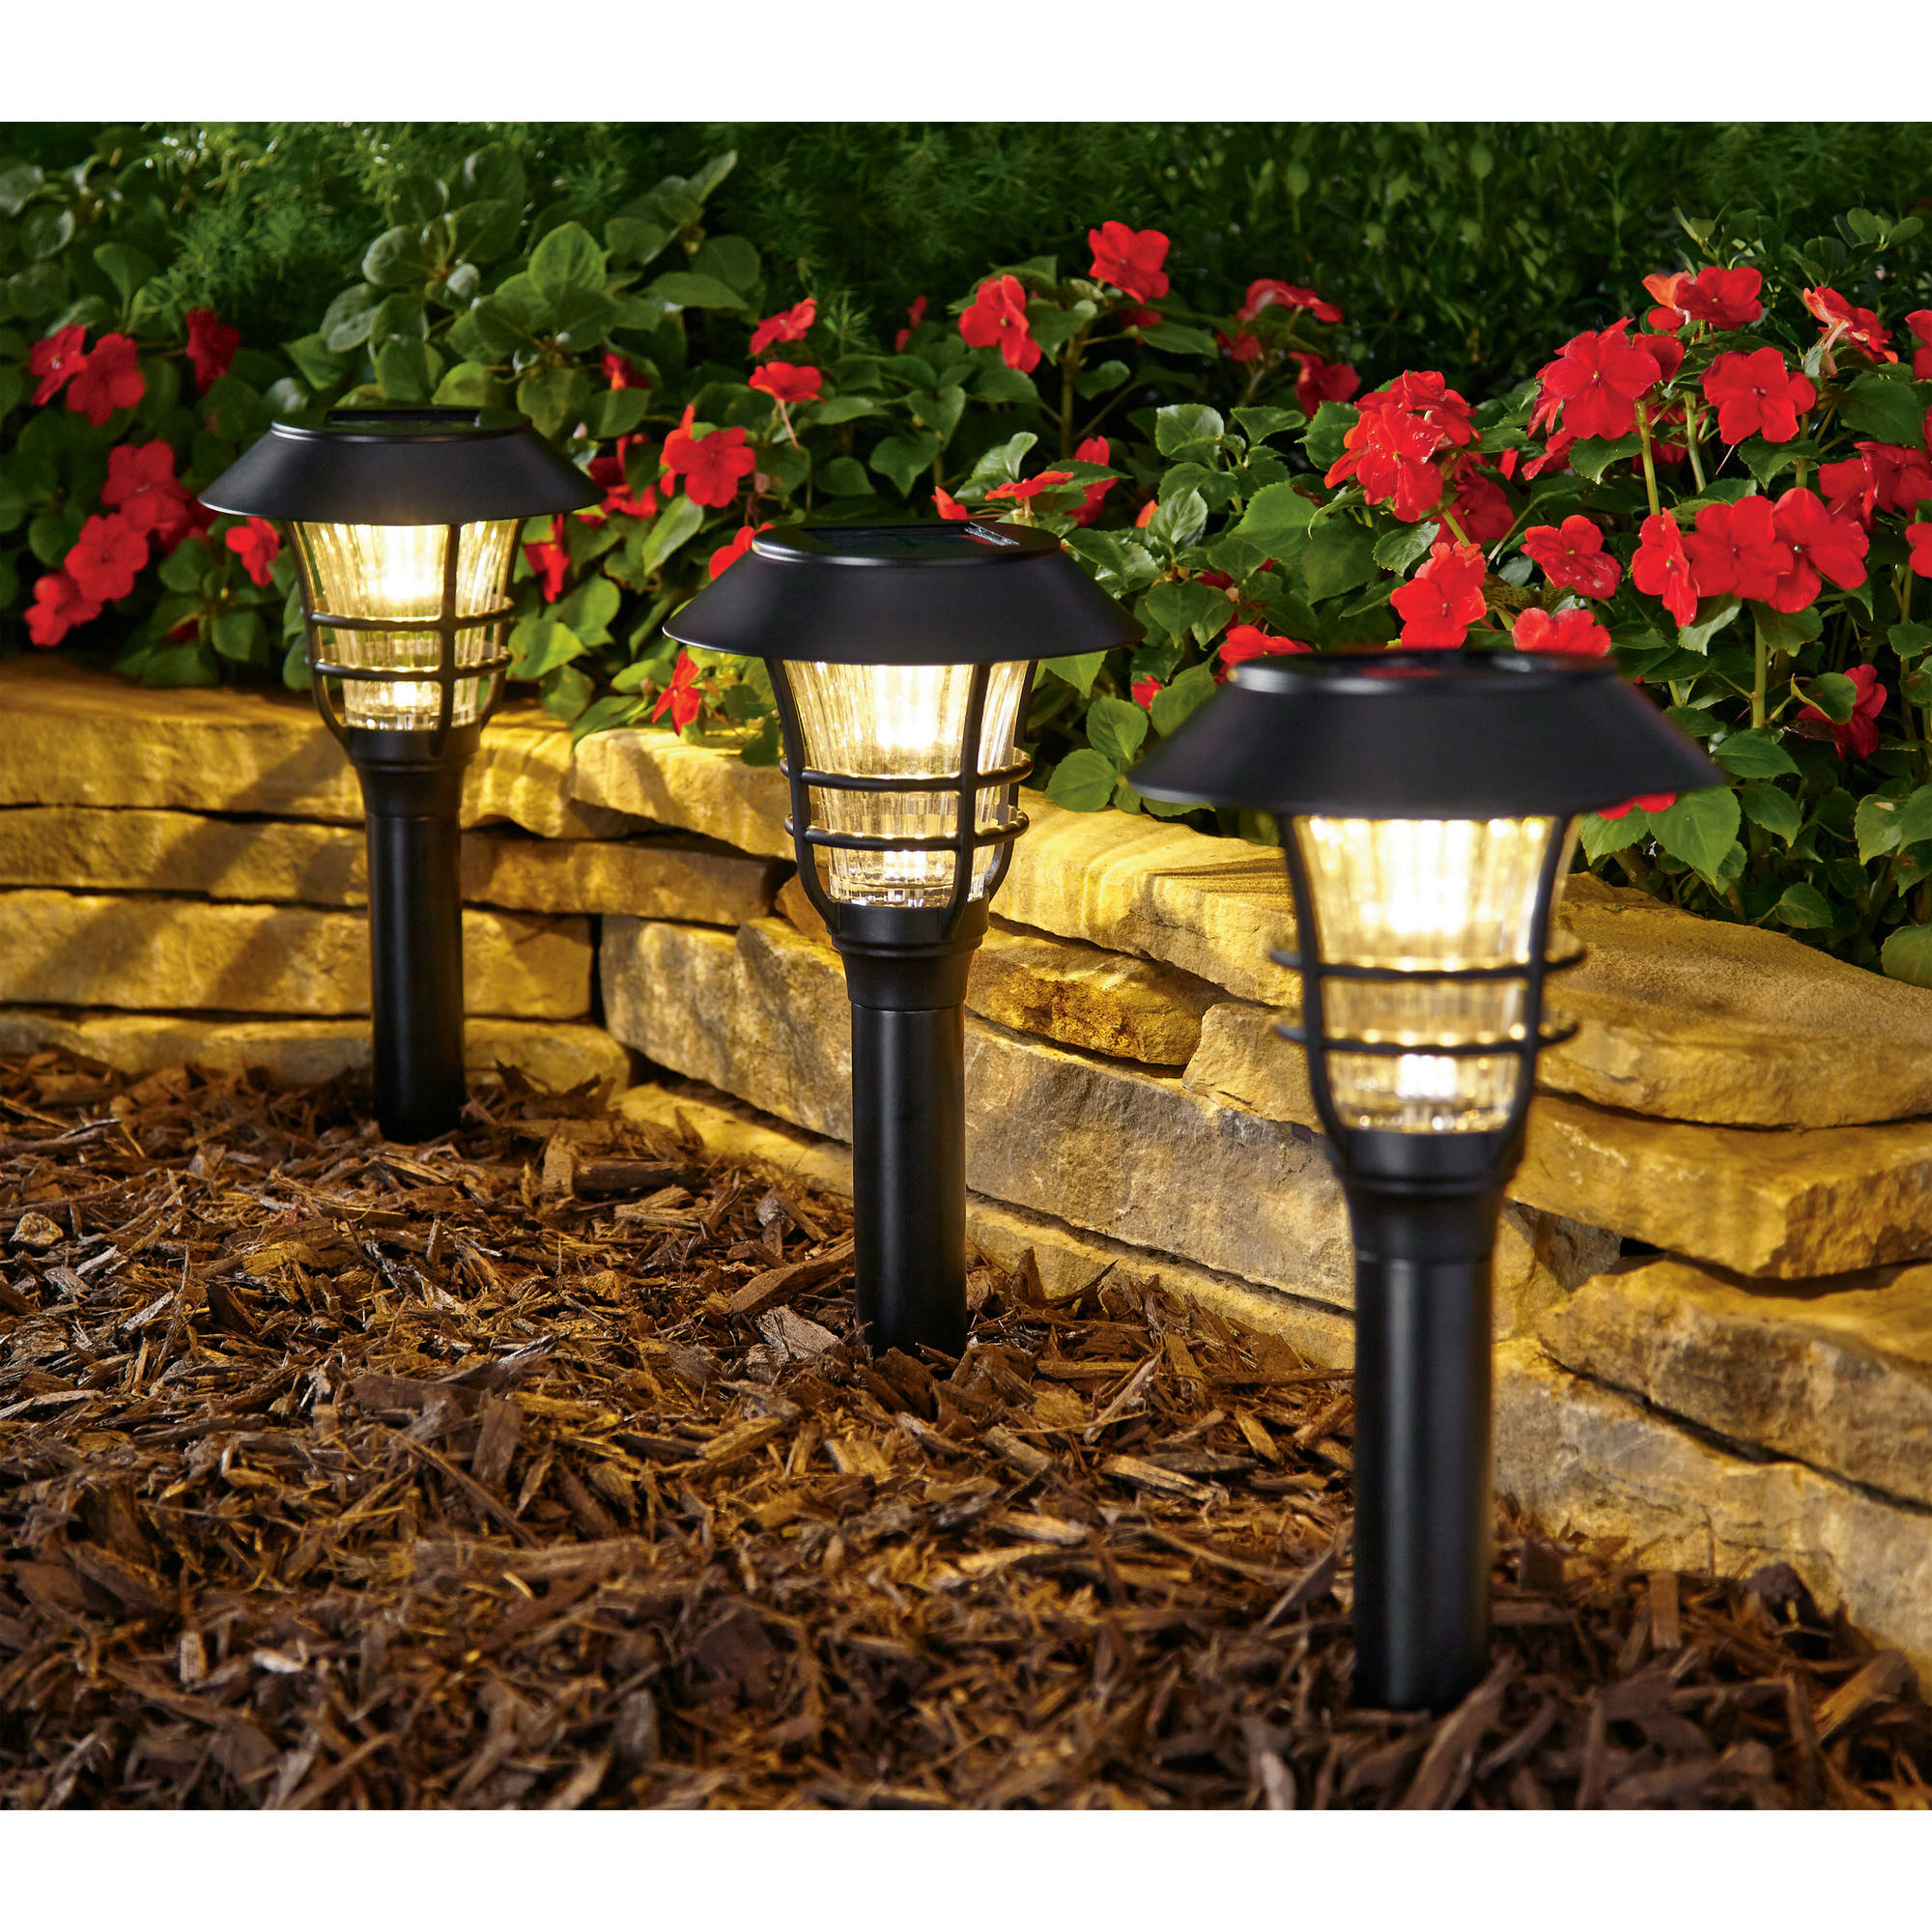 Better Homes and Gardens Avalon Solar-Powered Landscape Light Set by SKY RICH STAR LIMITED